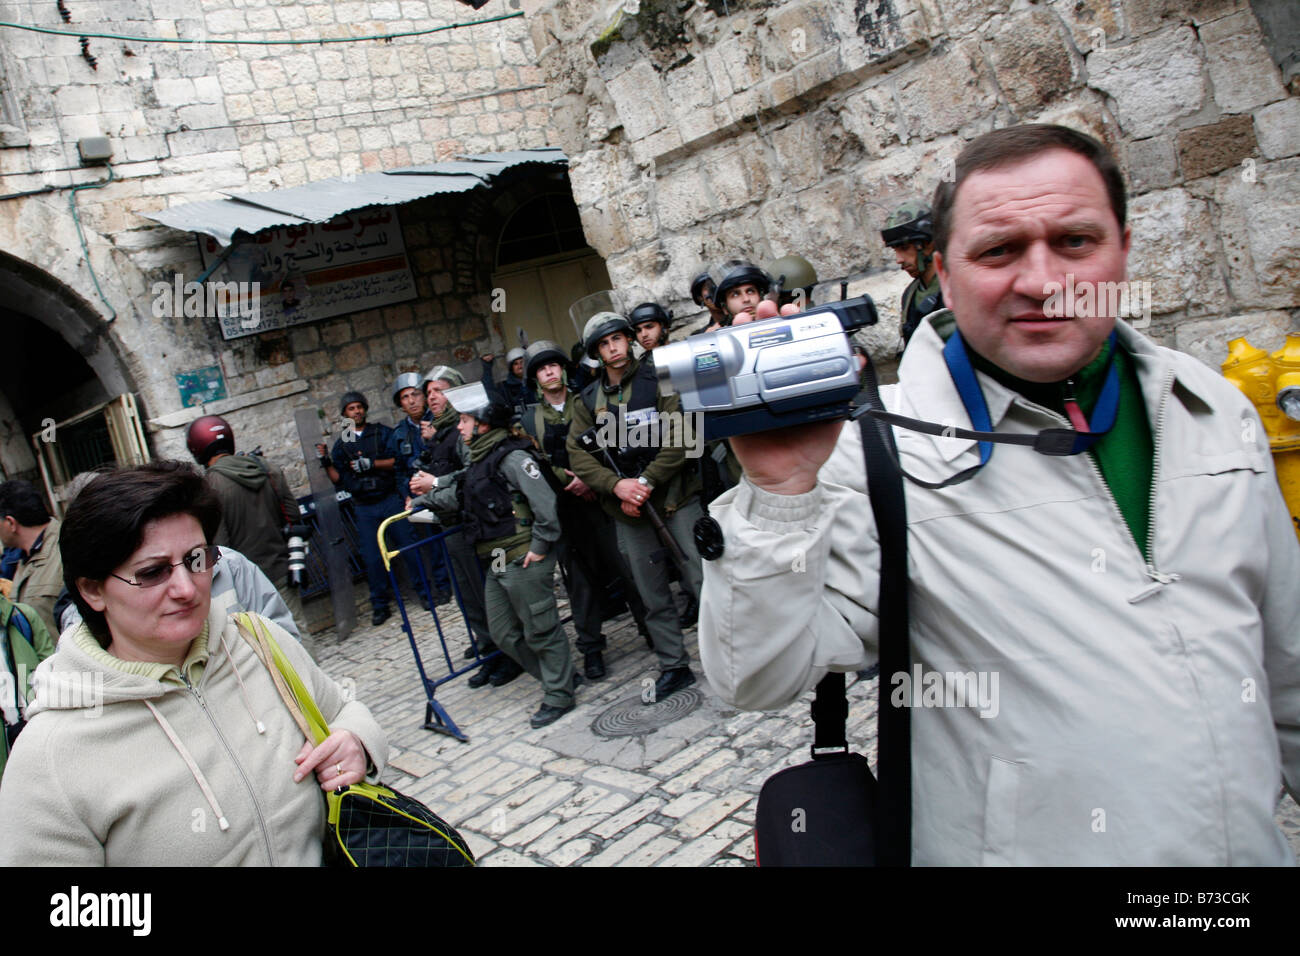 Christian tourists walking past Israeli police in the Old City of Jerusalem. - Stock Image